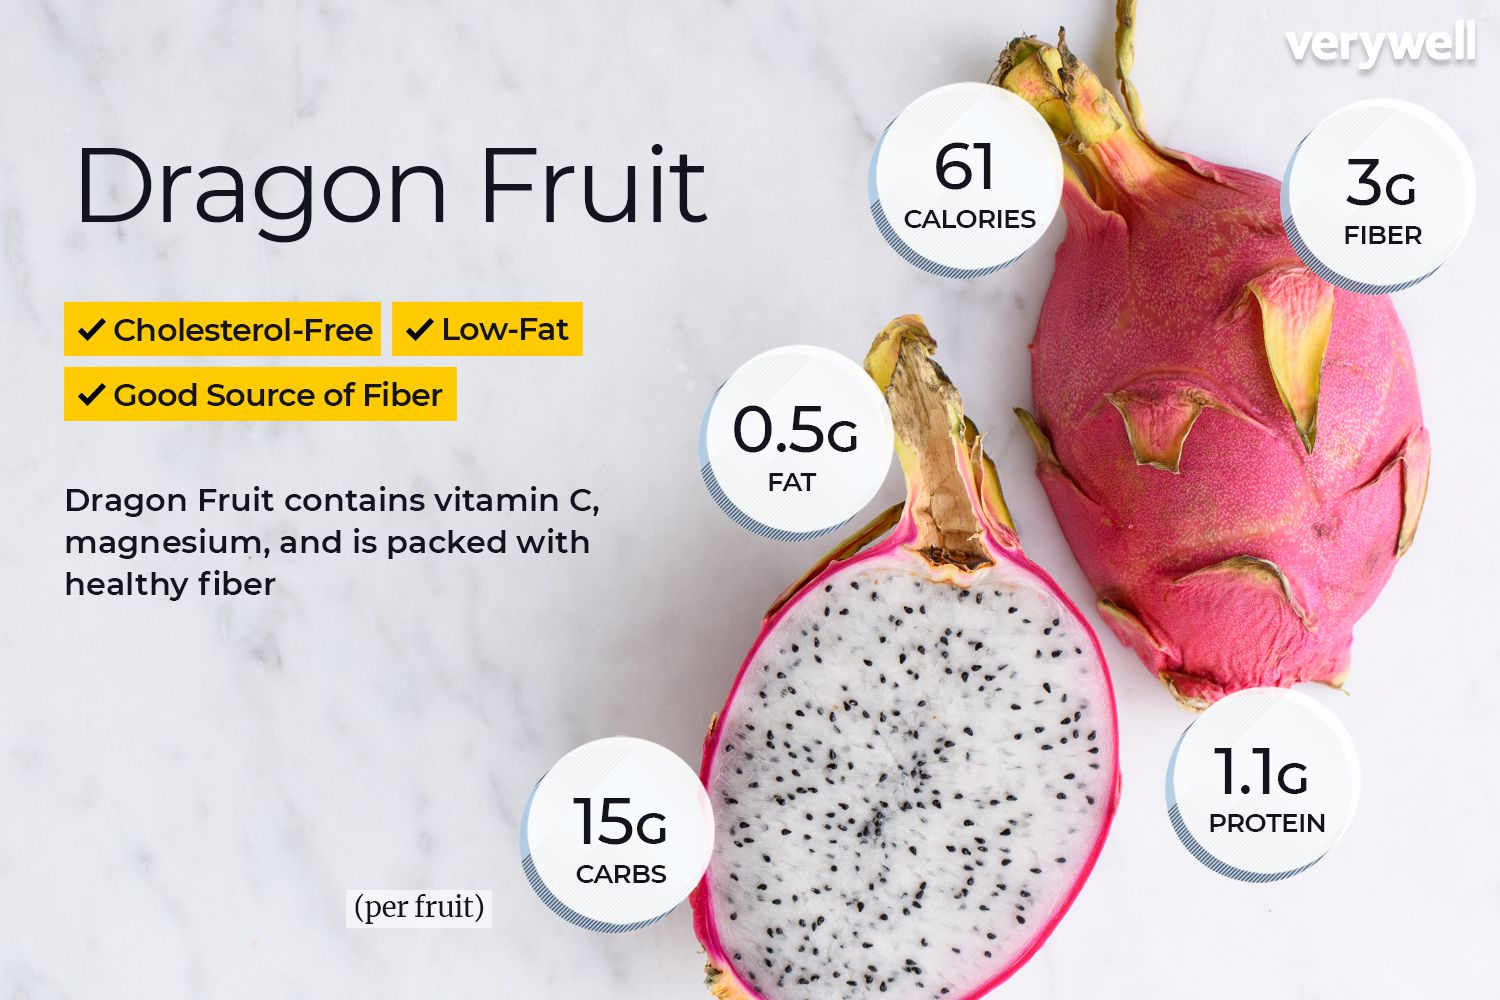 dragon fruit nutrition facts and health benefits